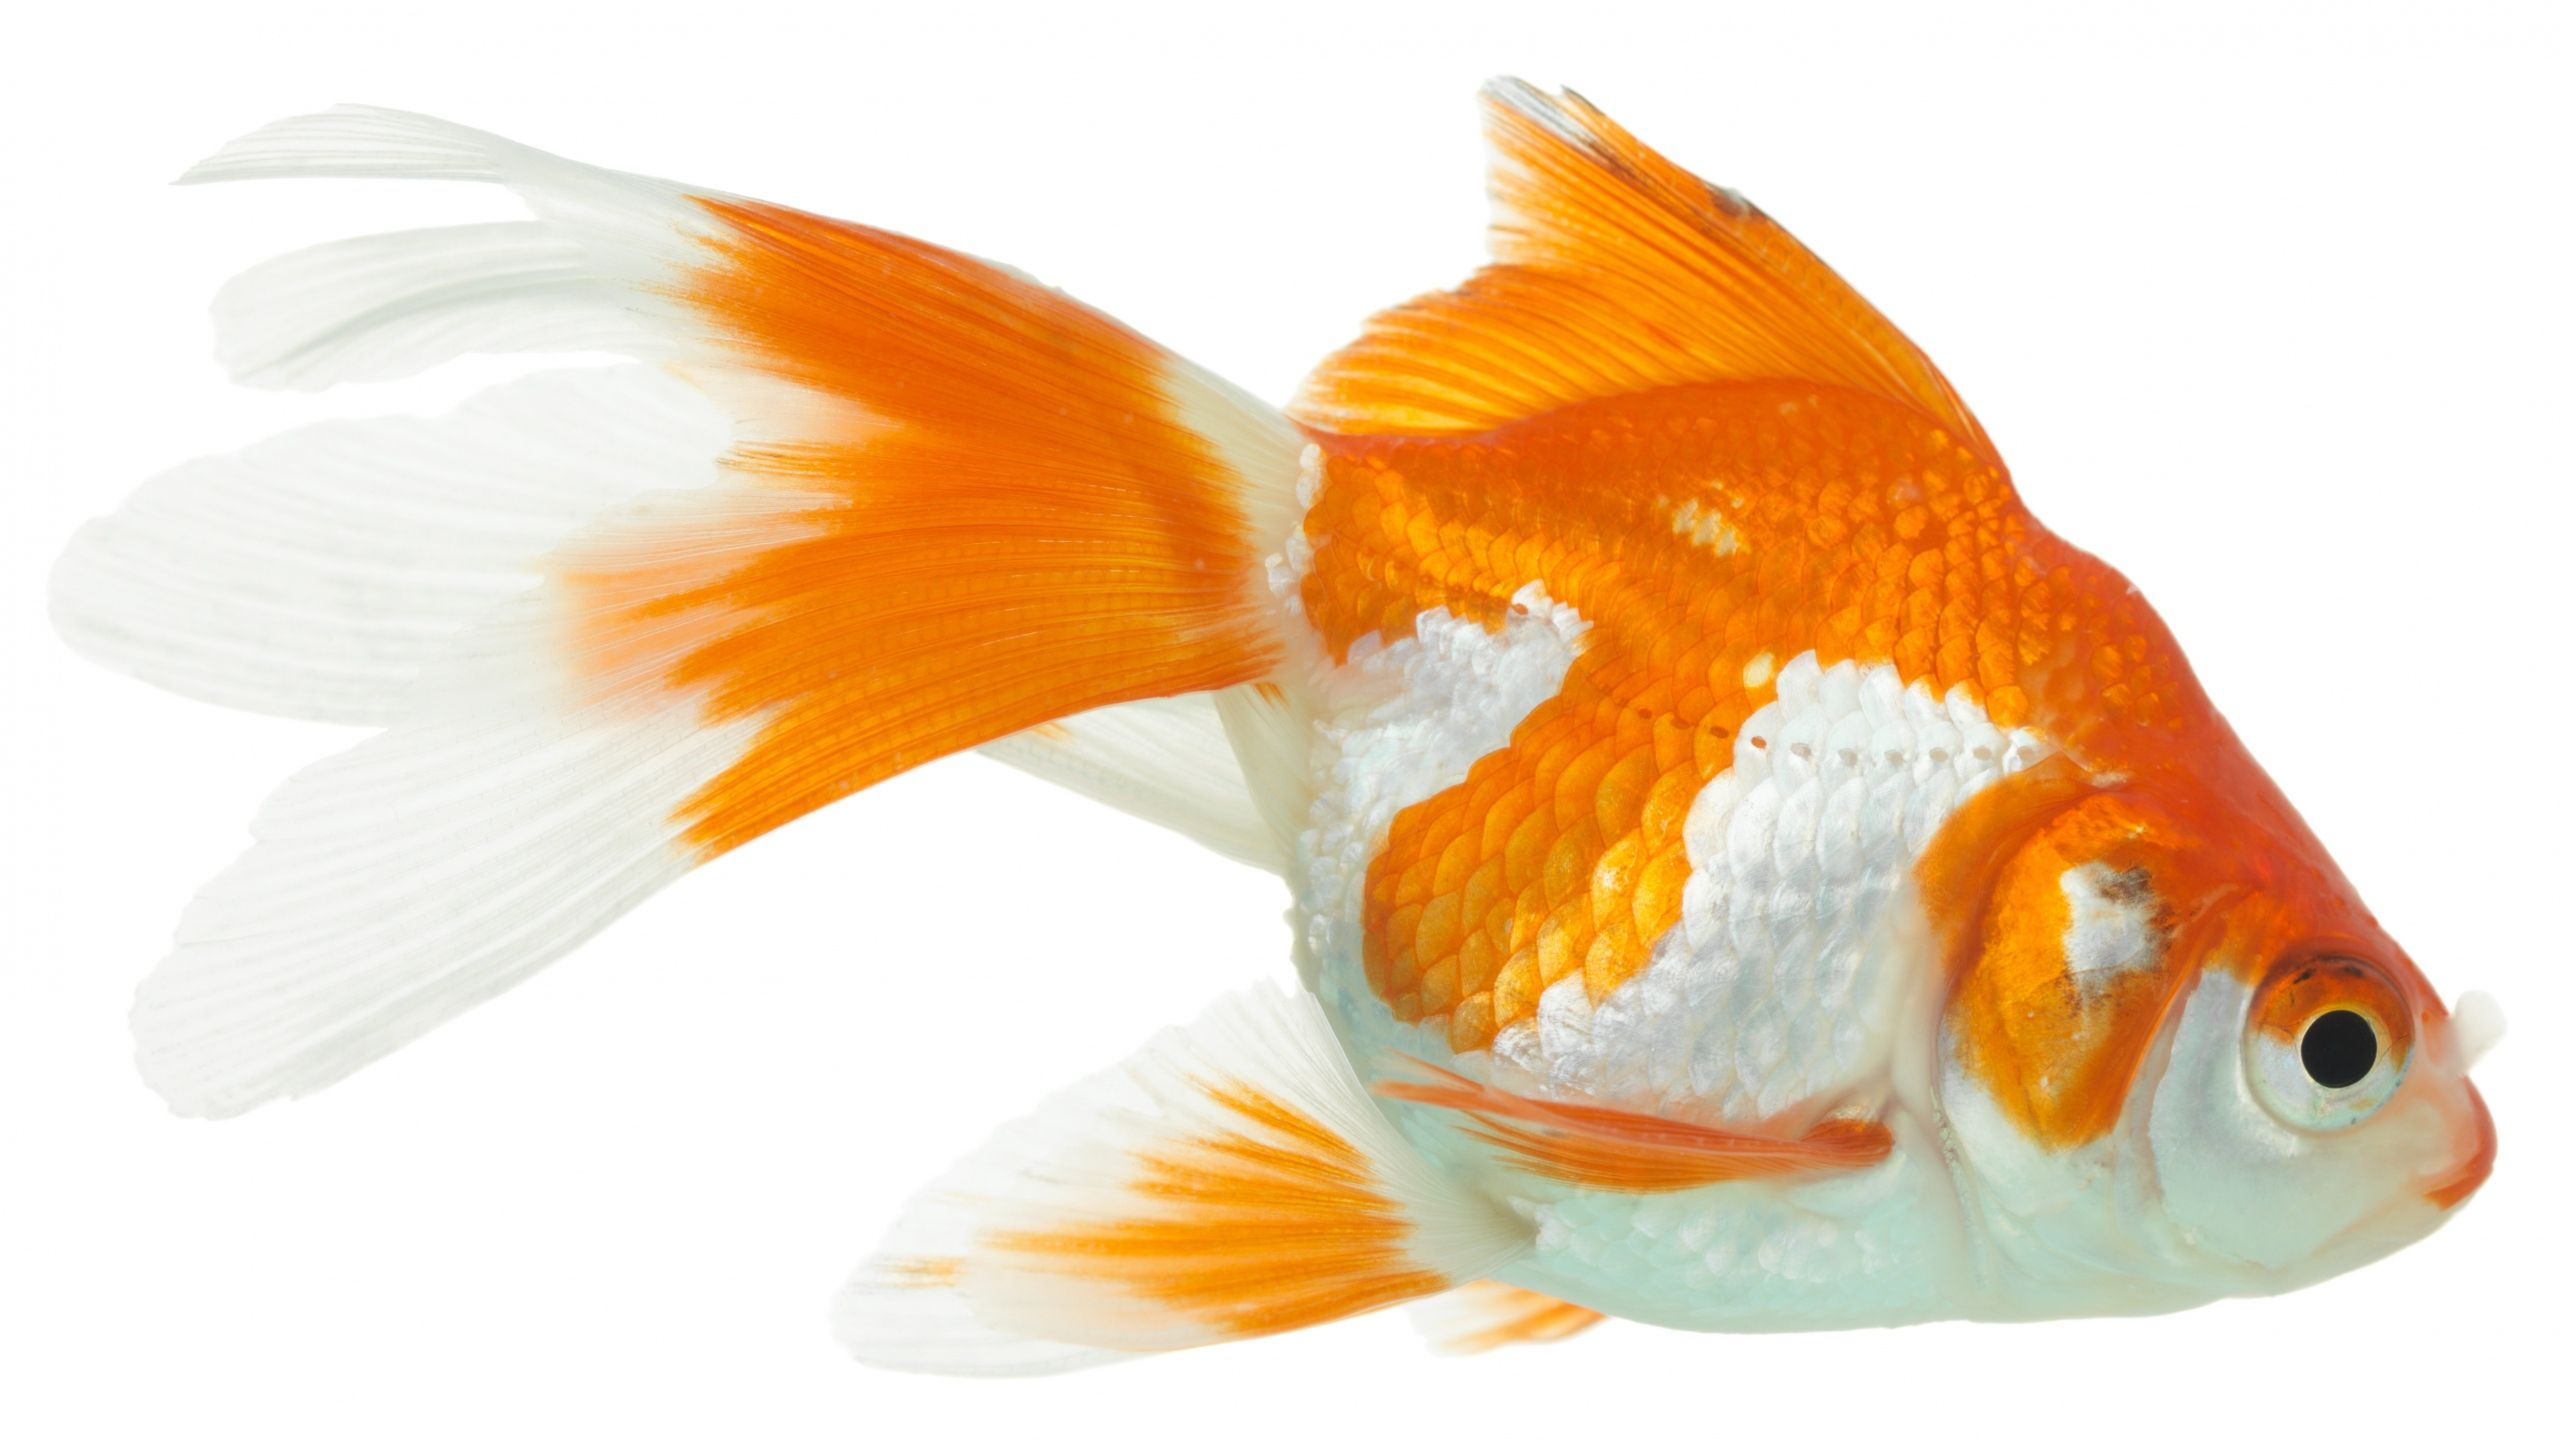 2560x1440 Wallpaper Goldfish White Background Close Up Goldfish Wallpaper Goldfish Pet Birds